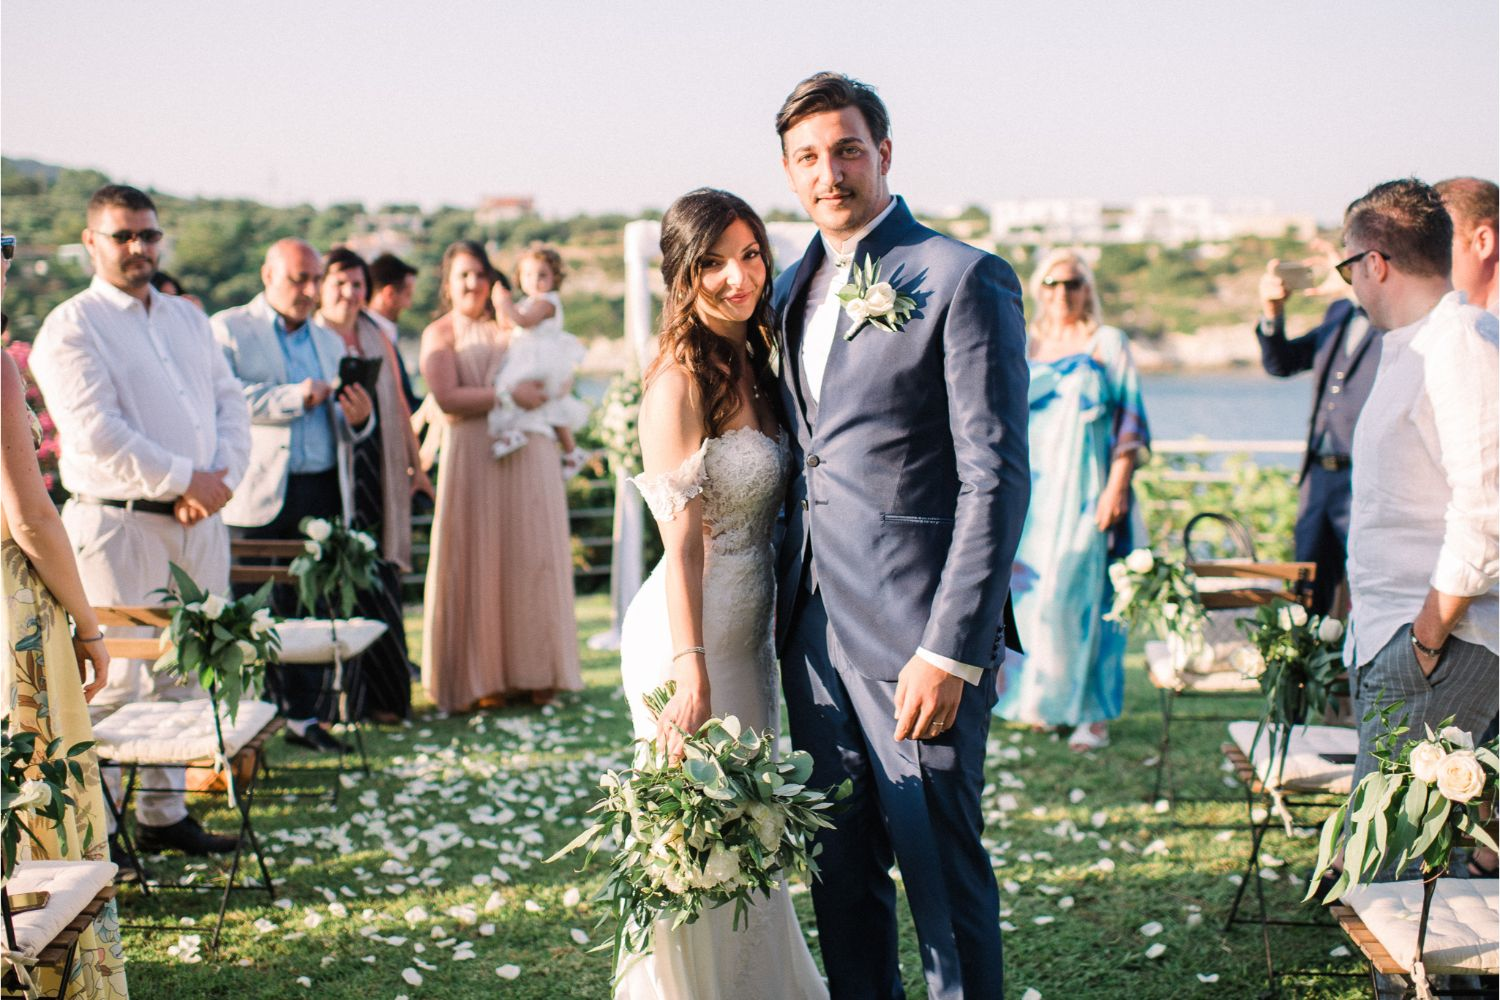 newlyweds at seaside wedding ceremony in Crete